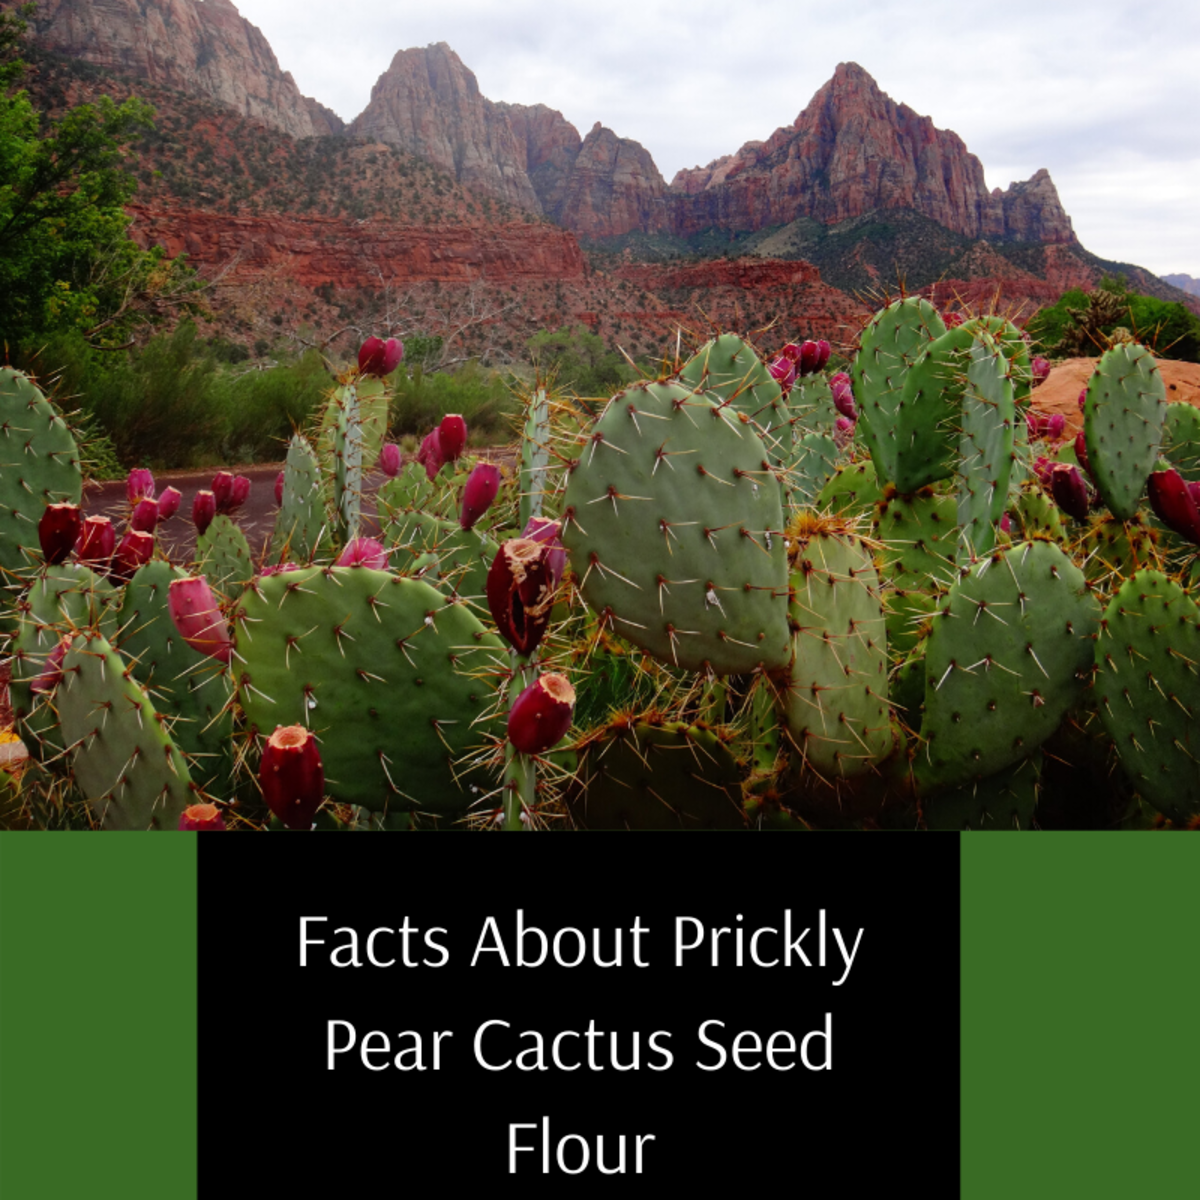 Prickly pear flour contains many micronutrients. See if this flour is right for your health needs.